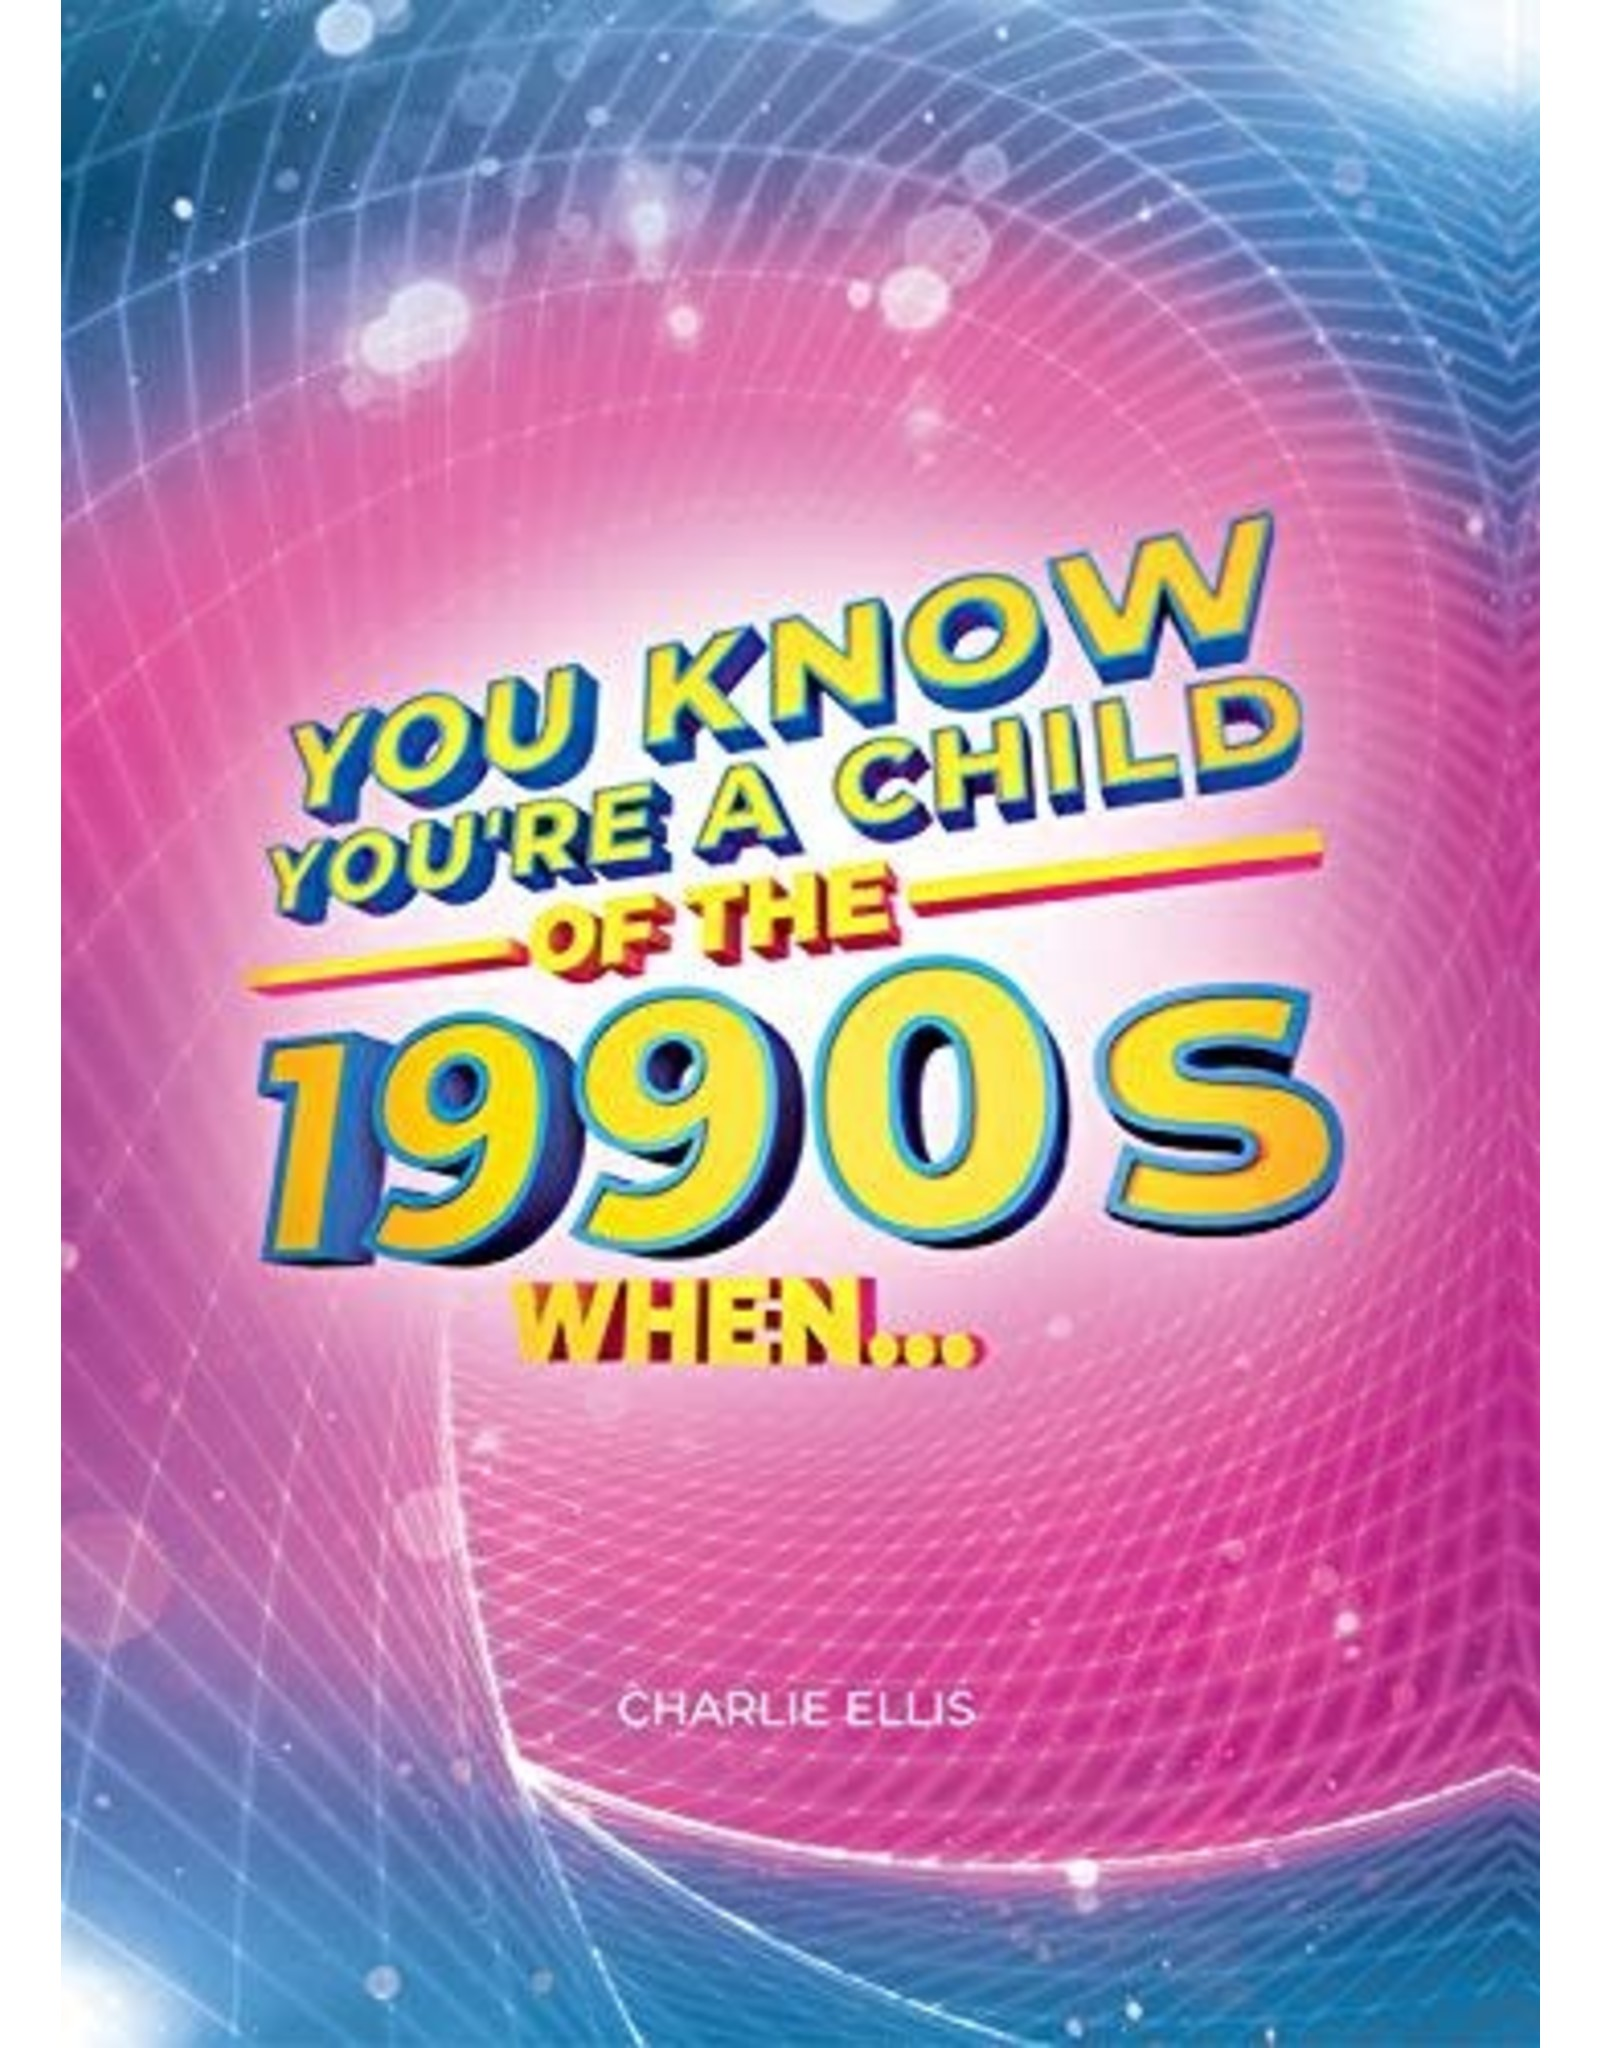 Hachette You Know You're a Child of the 1990s When